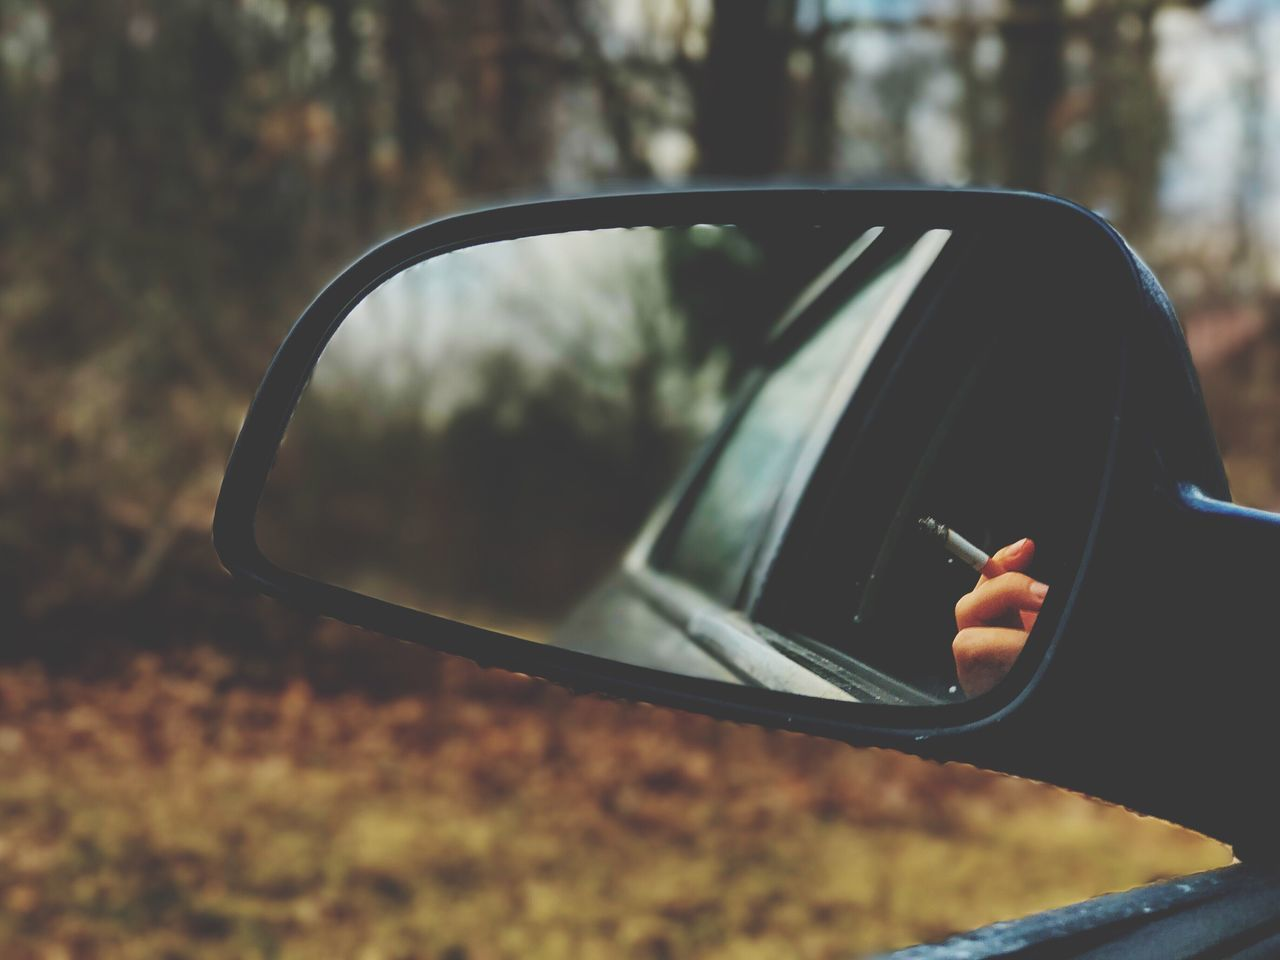 Cigarette  Cig Cigarette Time Side-view Mirror Car Reflection Close-up Transportation Mode Of Transport Vehicle Mirror Tree Day